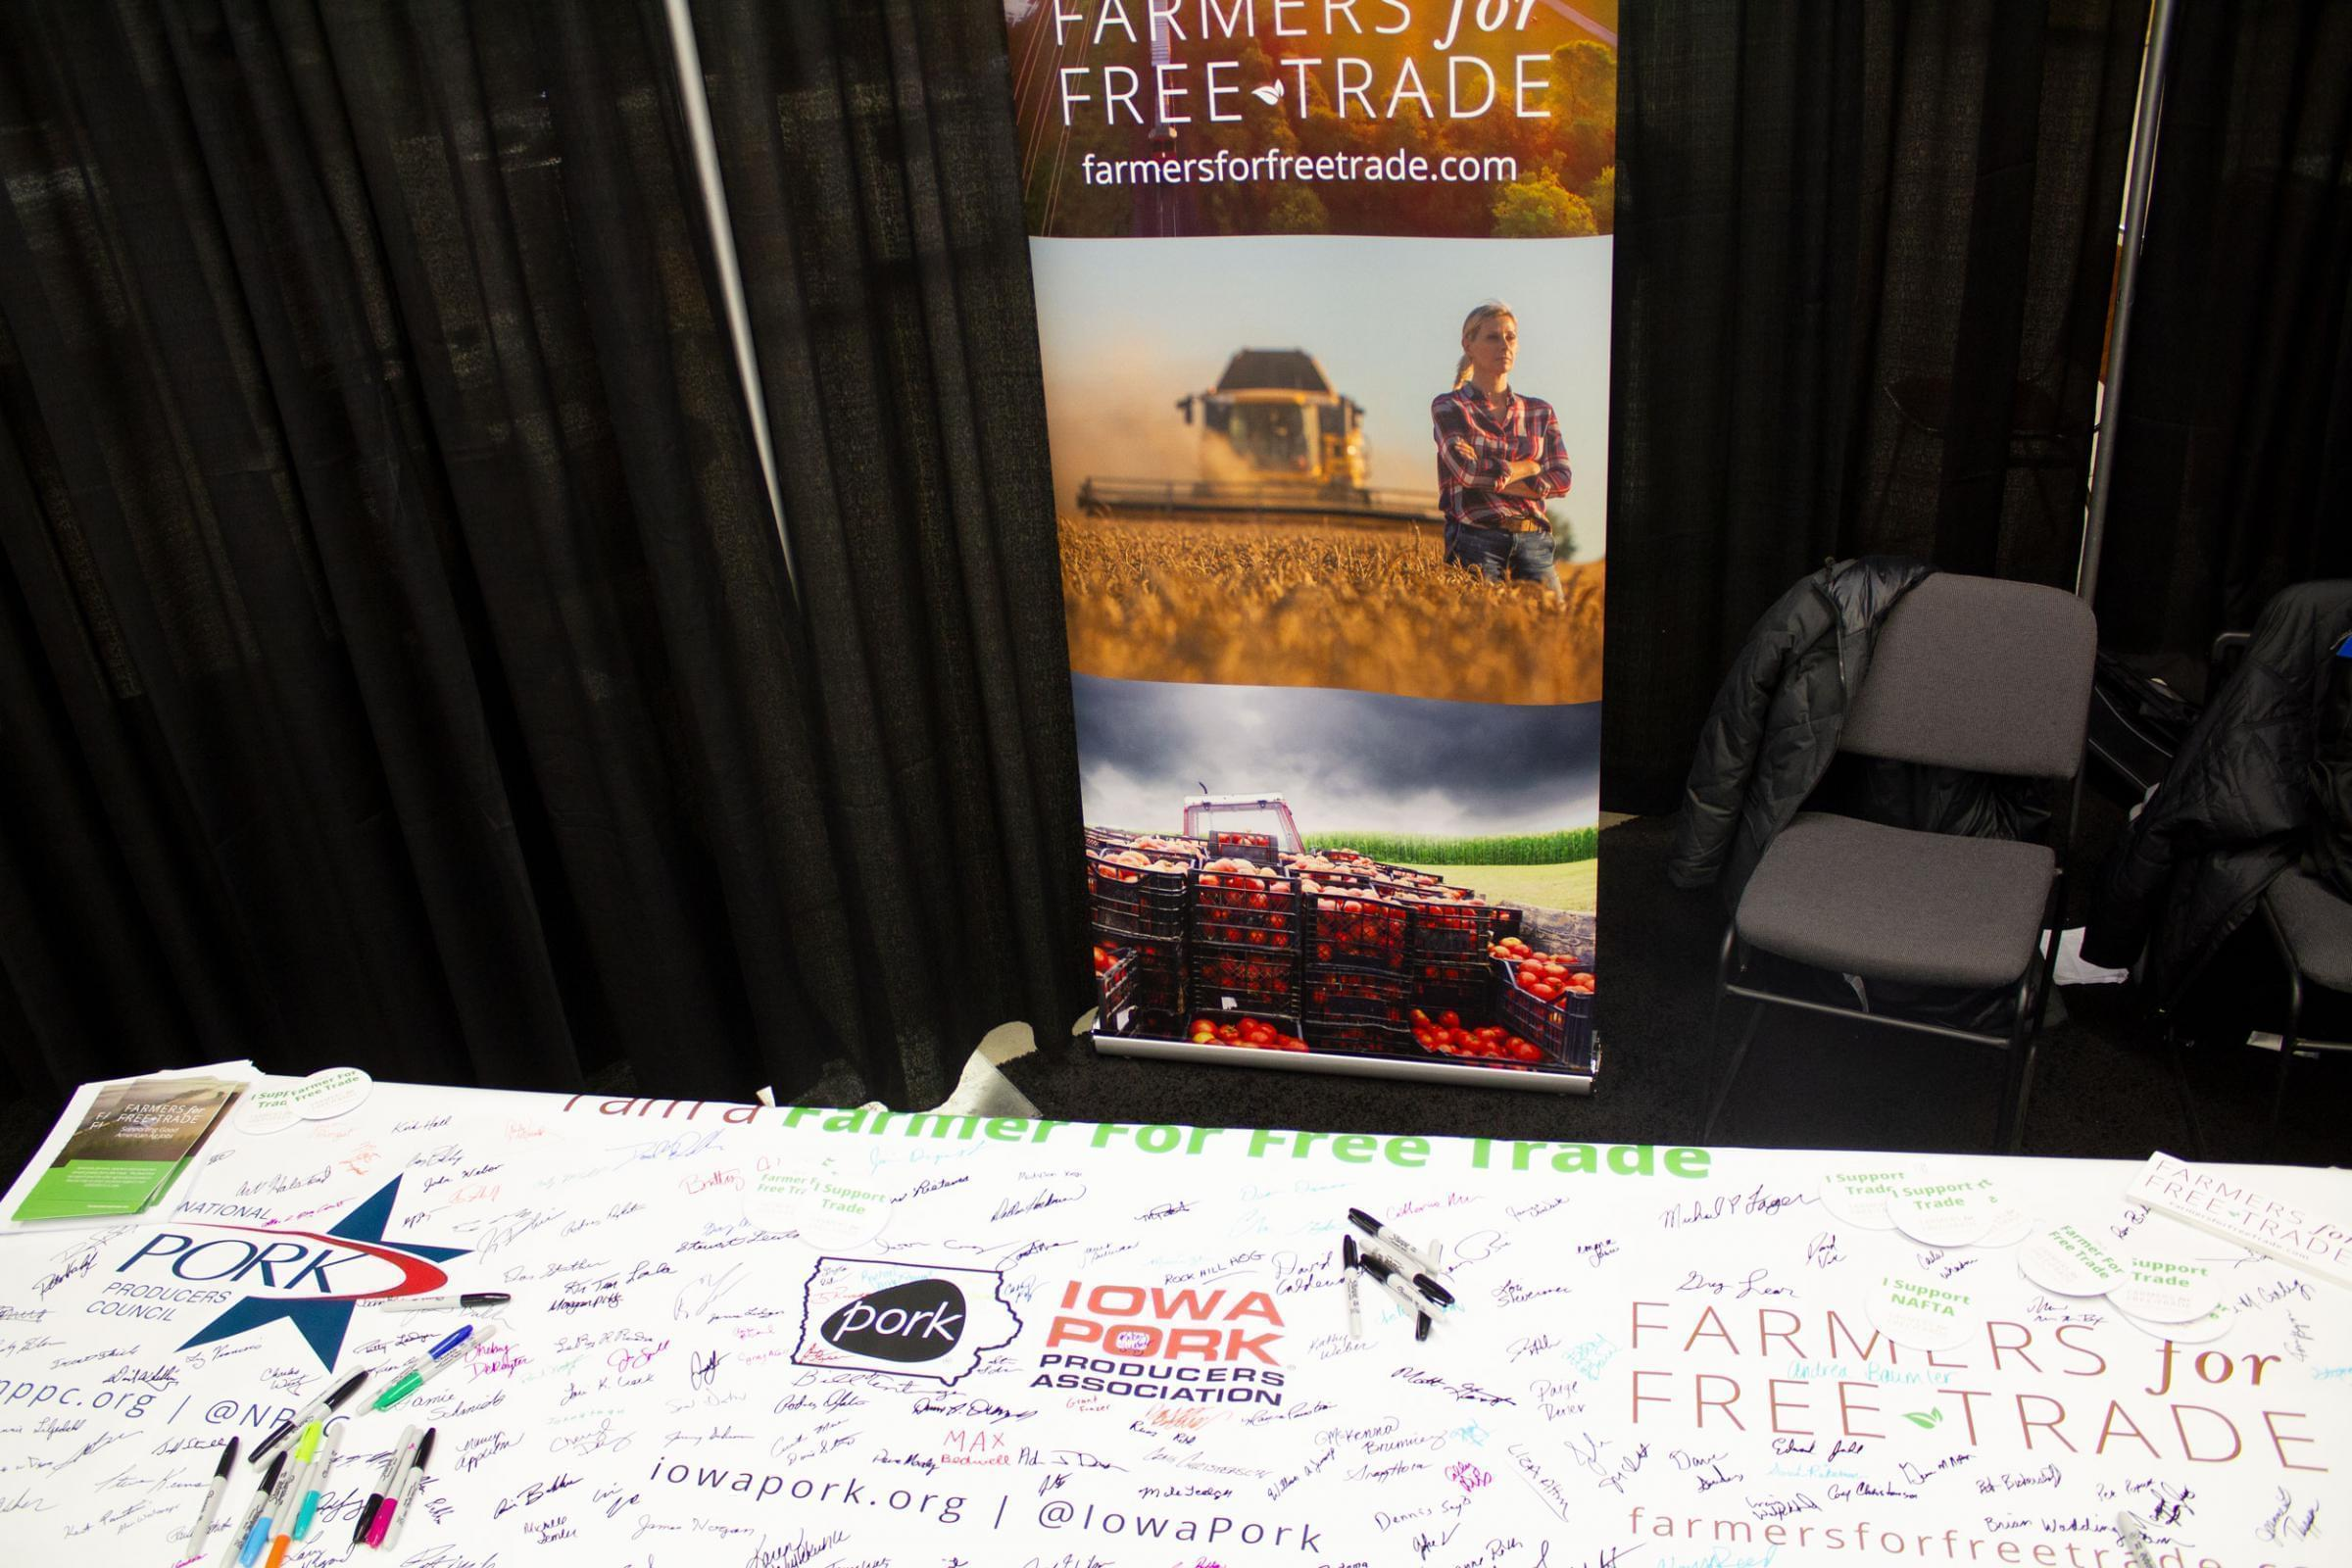 At the 2018 Iowa Pork Congress in Des Moines, Farmers for Free Trade invited farmers to show their support for trade deals.